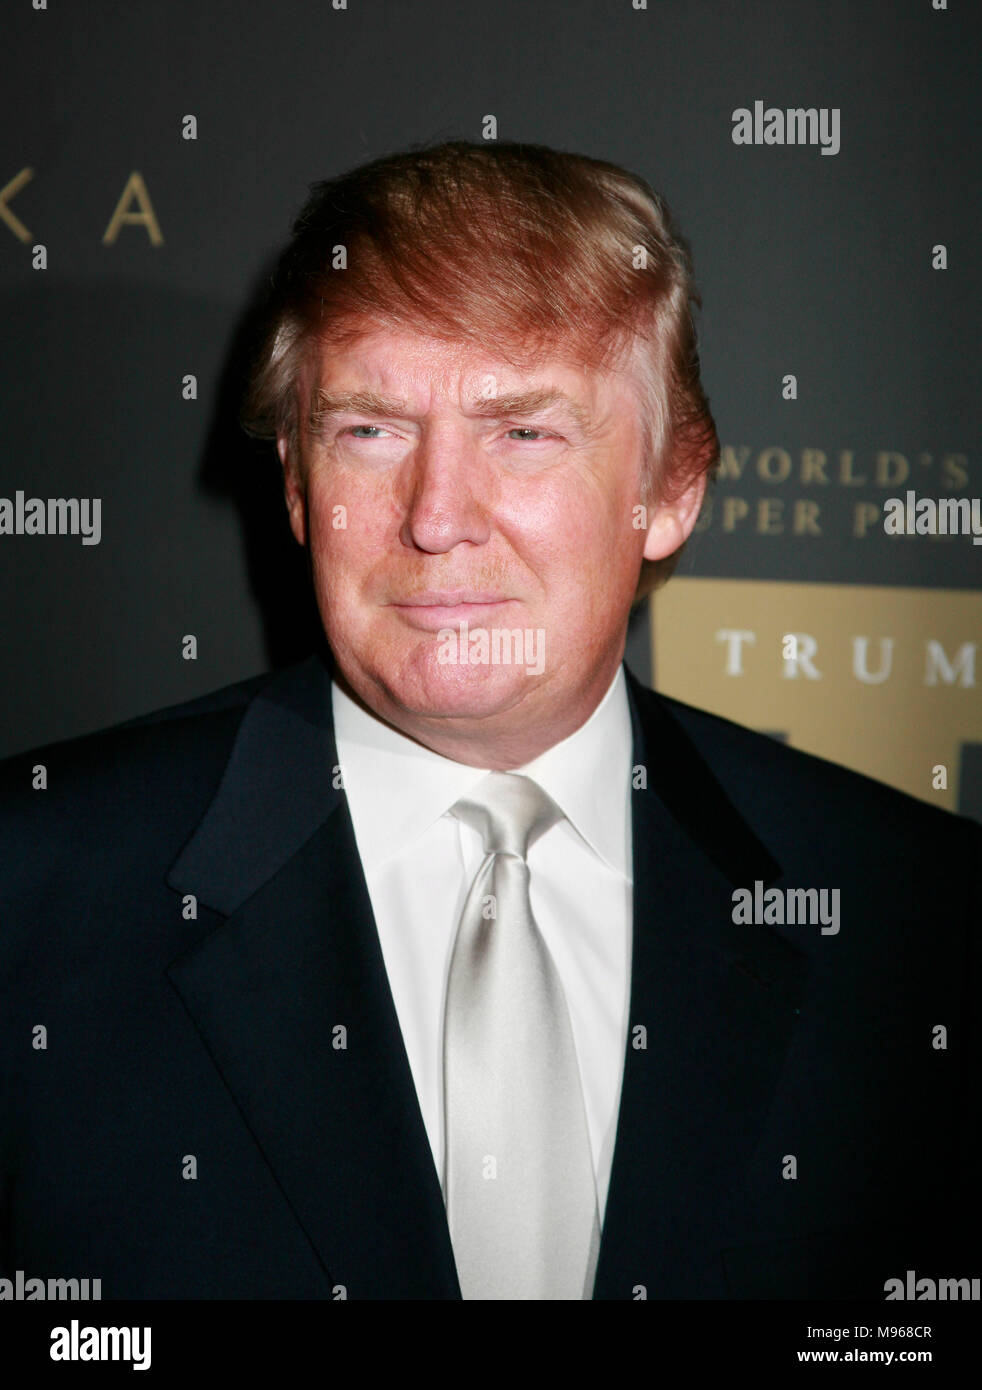 Donald Trump arrives at the Trump Vodka party at Les Deux night club in Hollywood, CA on January 17, 2007. Photo credit: Francis Specker - Stock Image